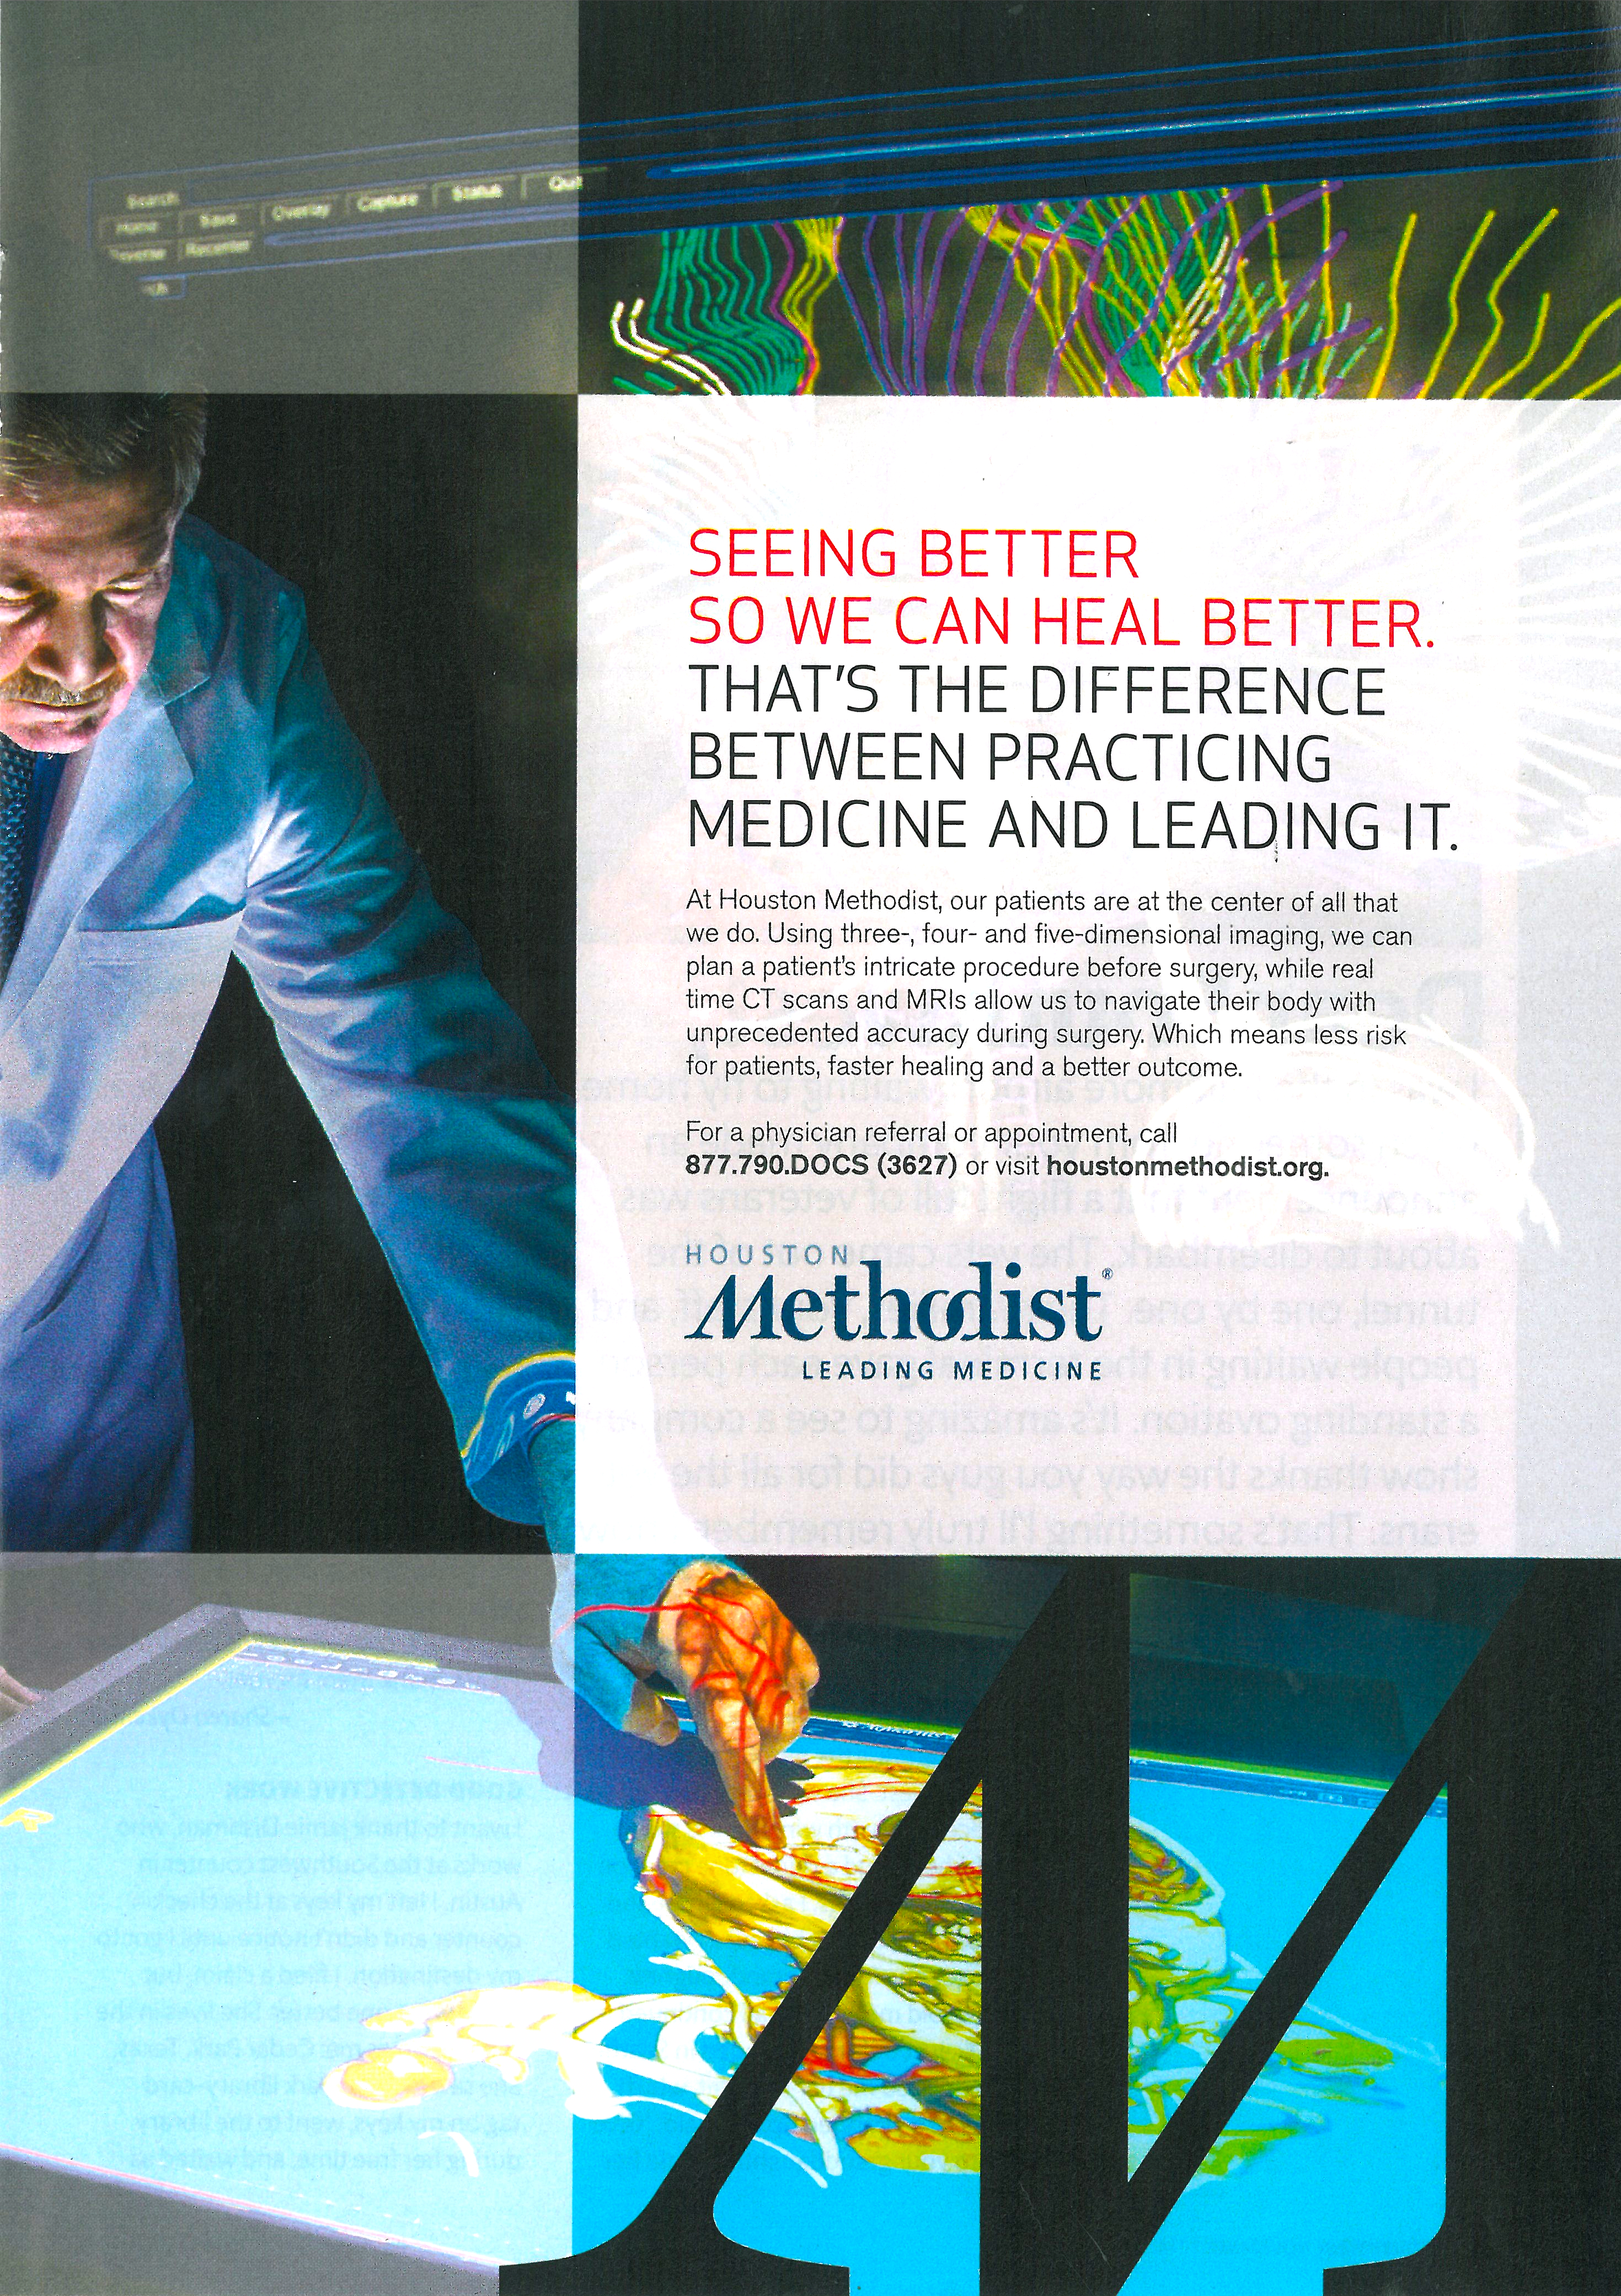 A Fresh Batch of Healthcare Print Ads – The Healthcare Marketer